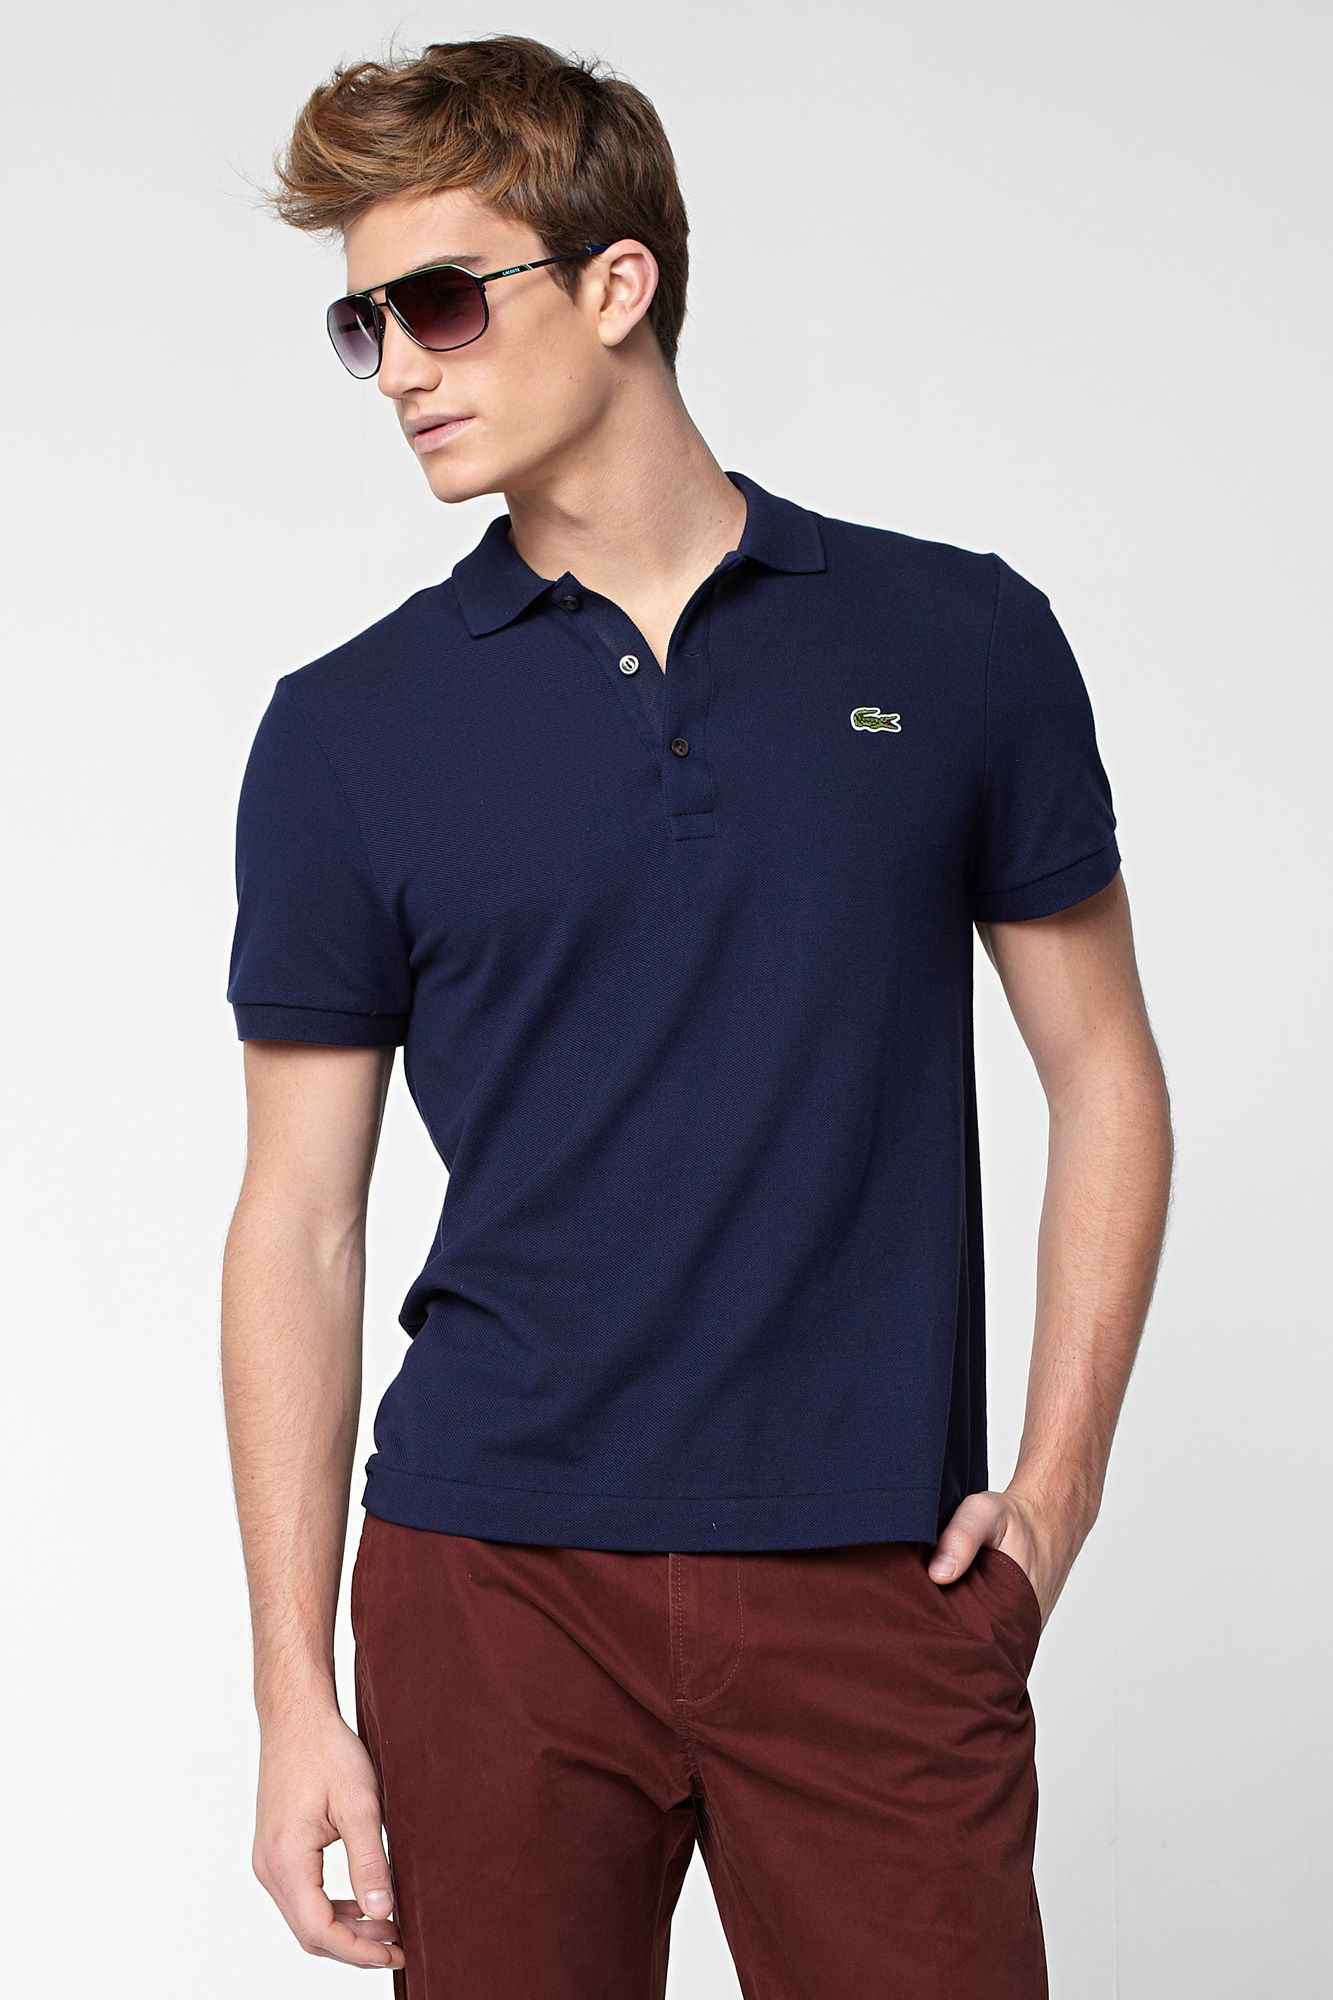 Lacoste polo shirt short sleeve slim for Mens slim polo shirts